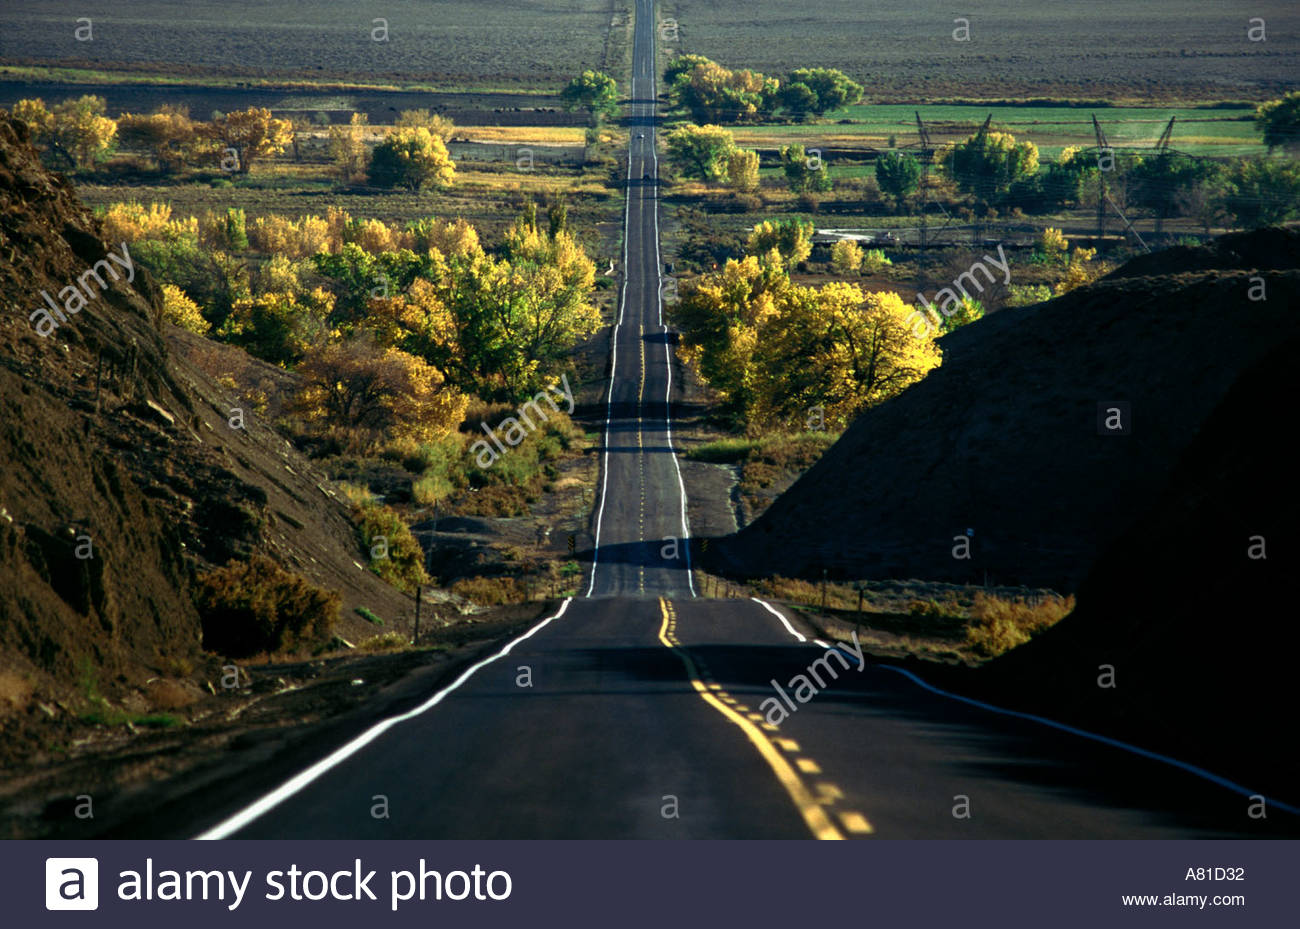 country road highway route straight line landscape travel transport connection distance communication landscape Emery Utah USA - Stock Image